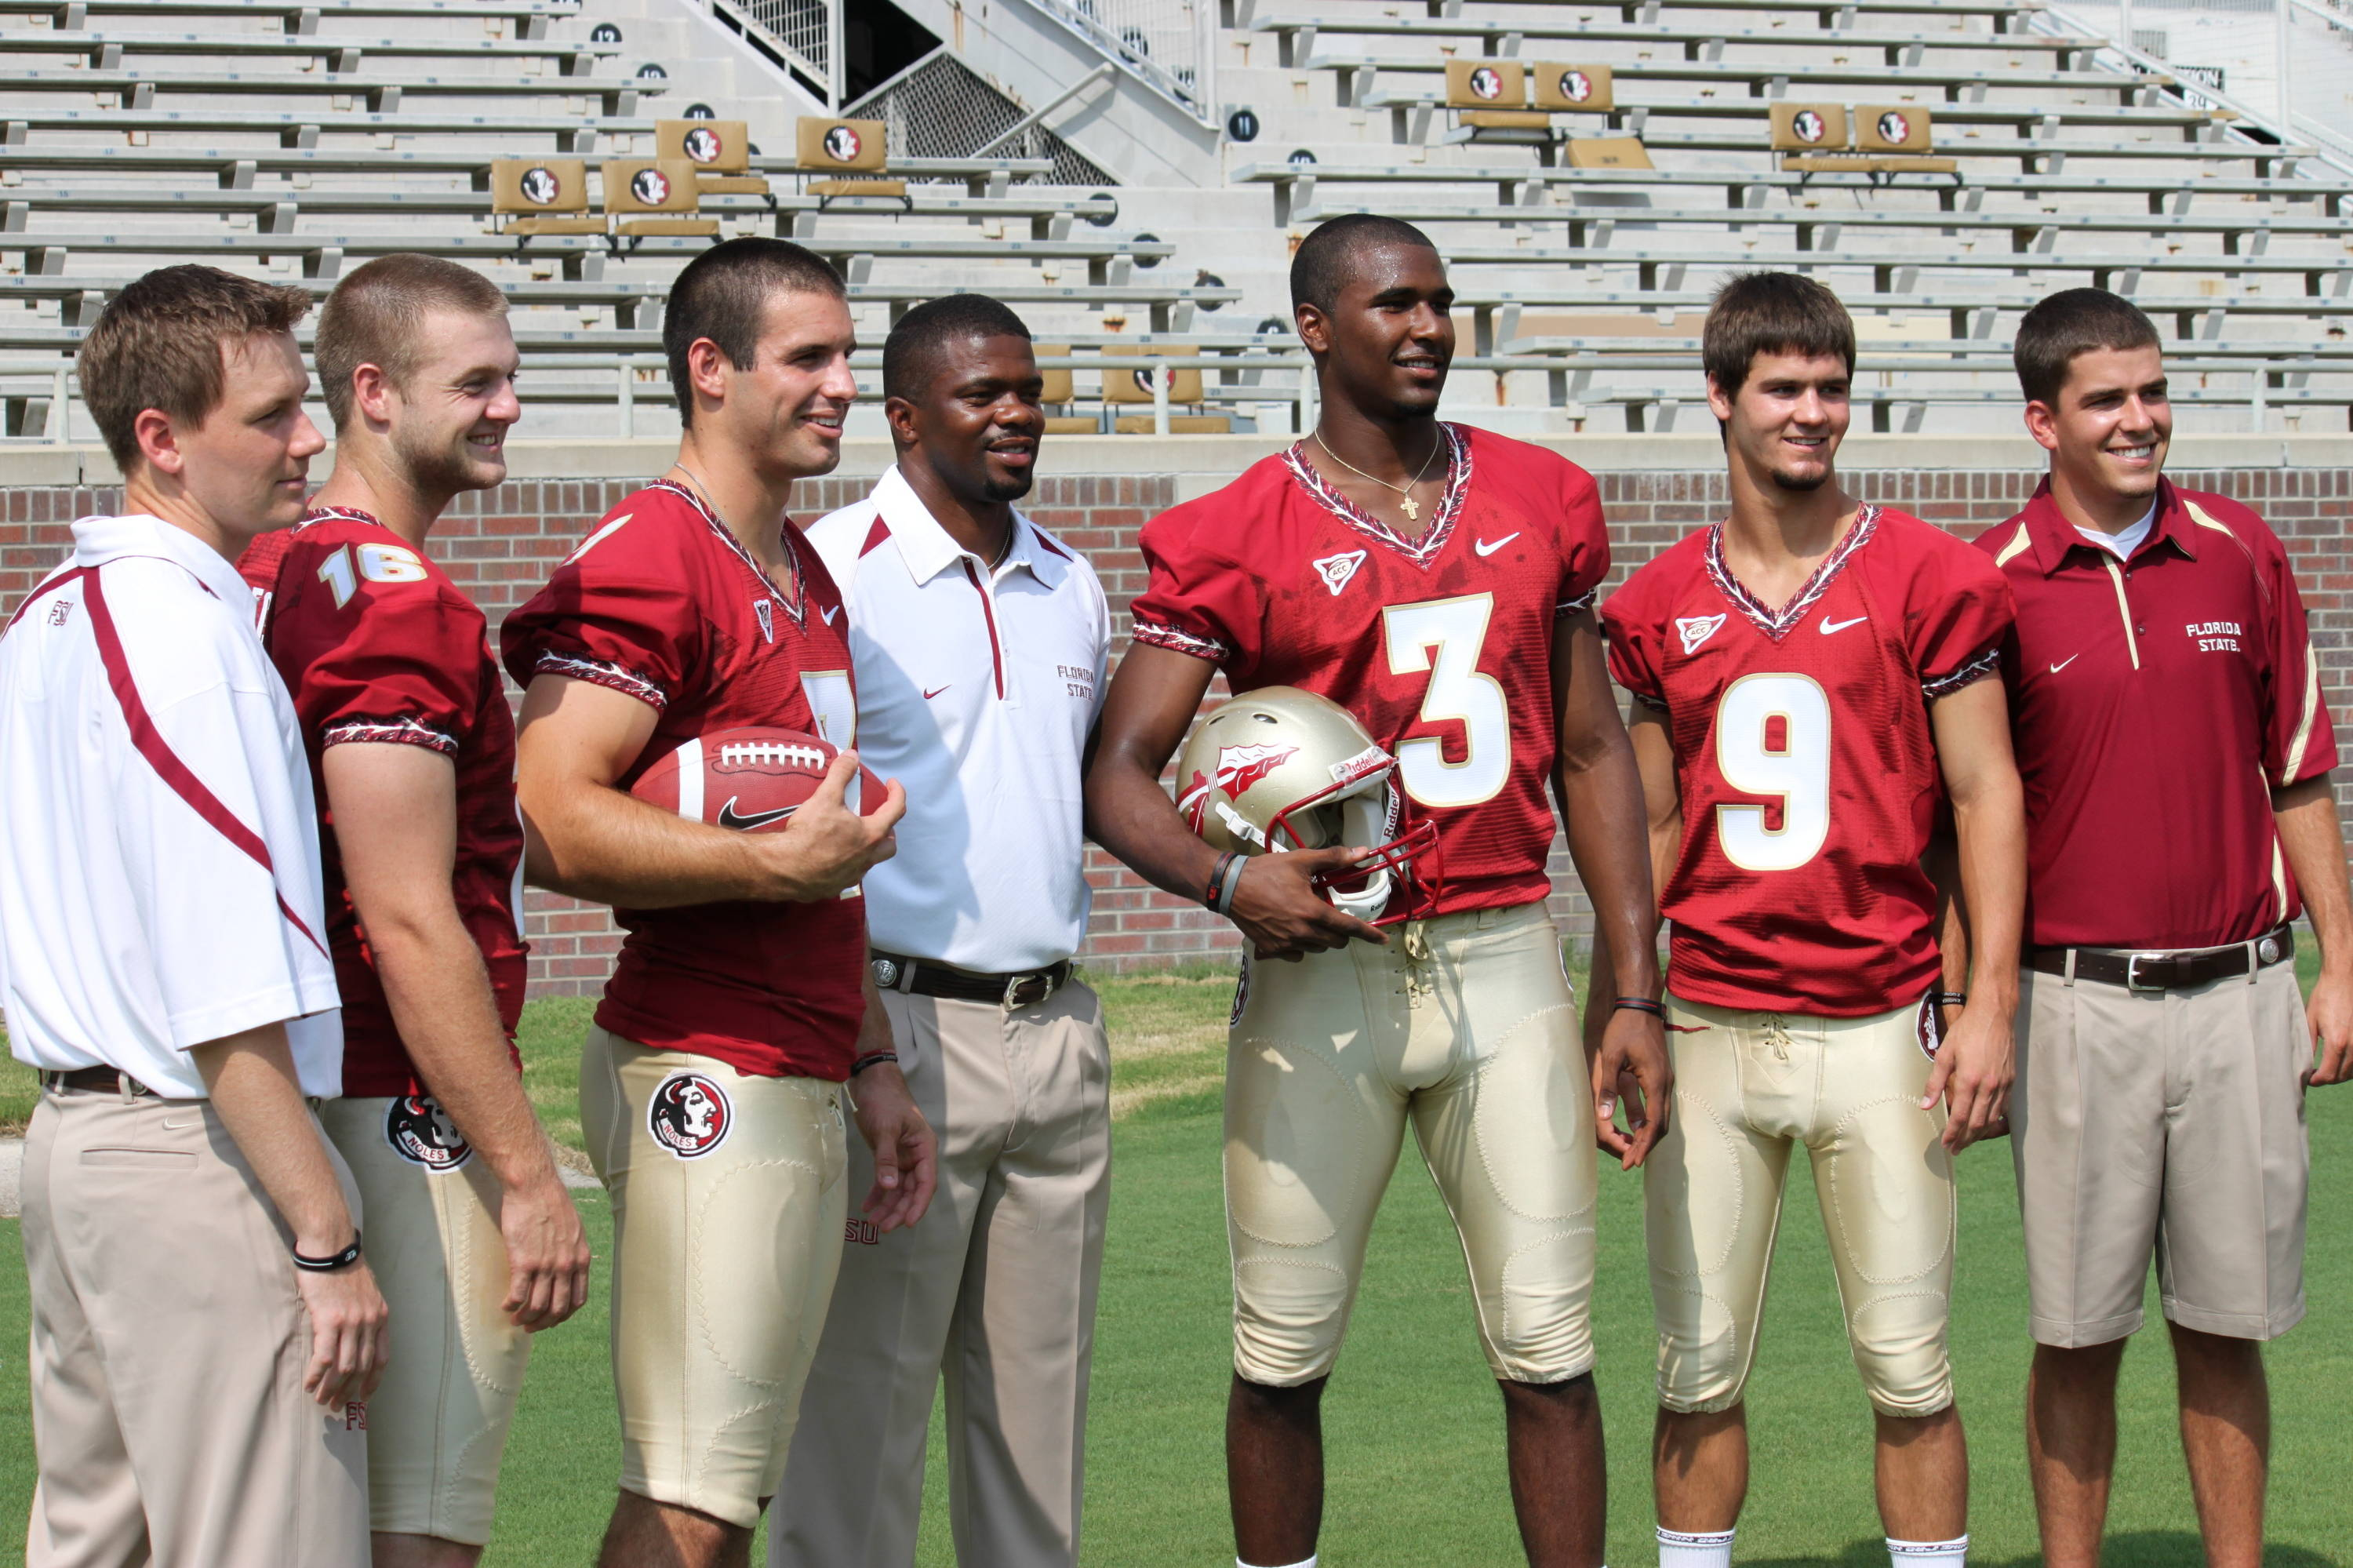 The Florida State quarterbacks.